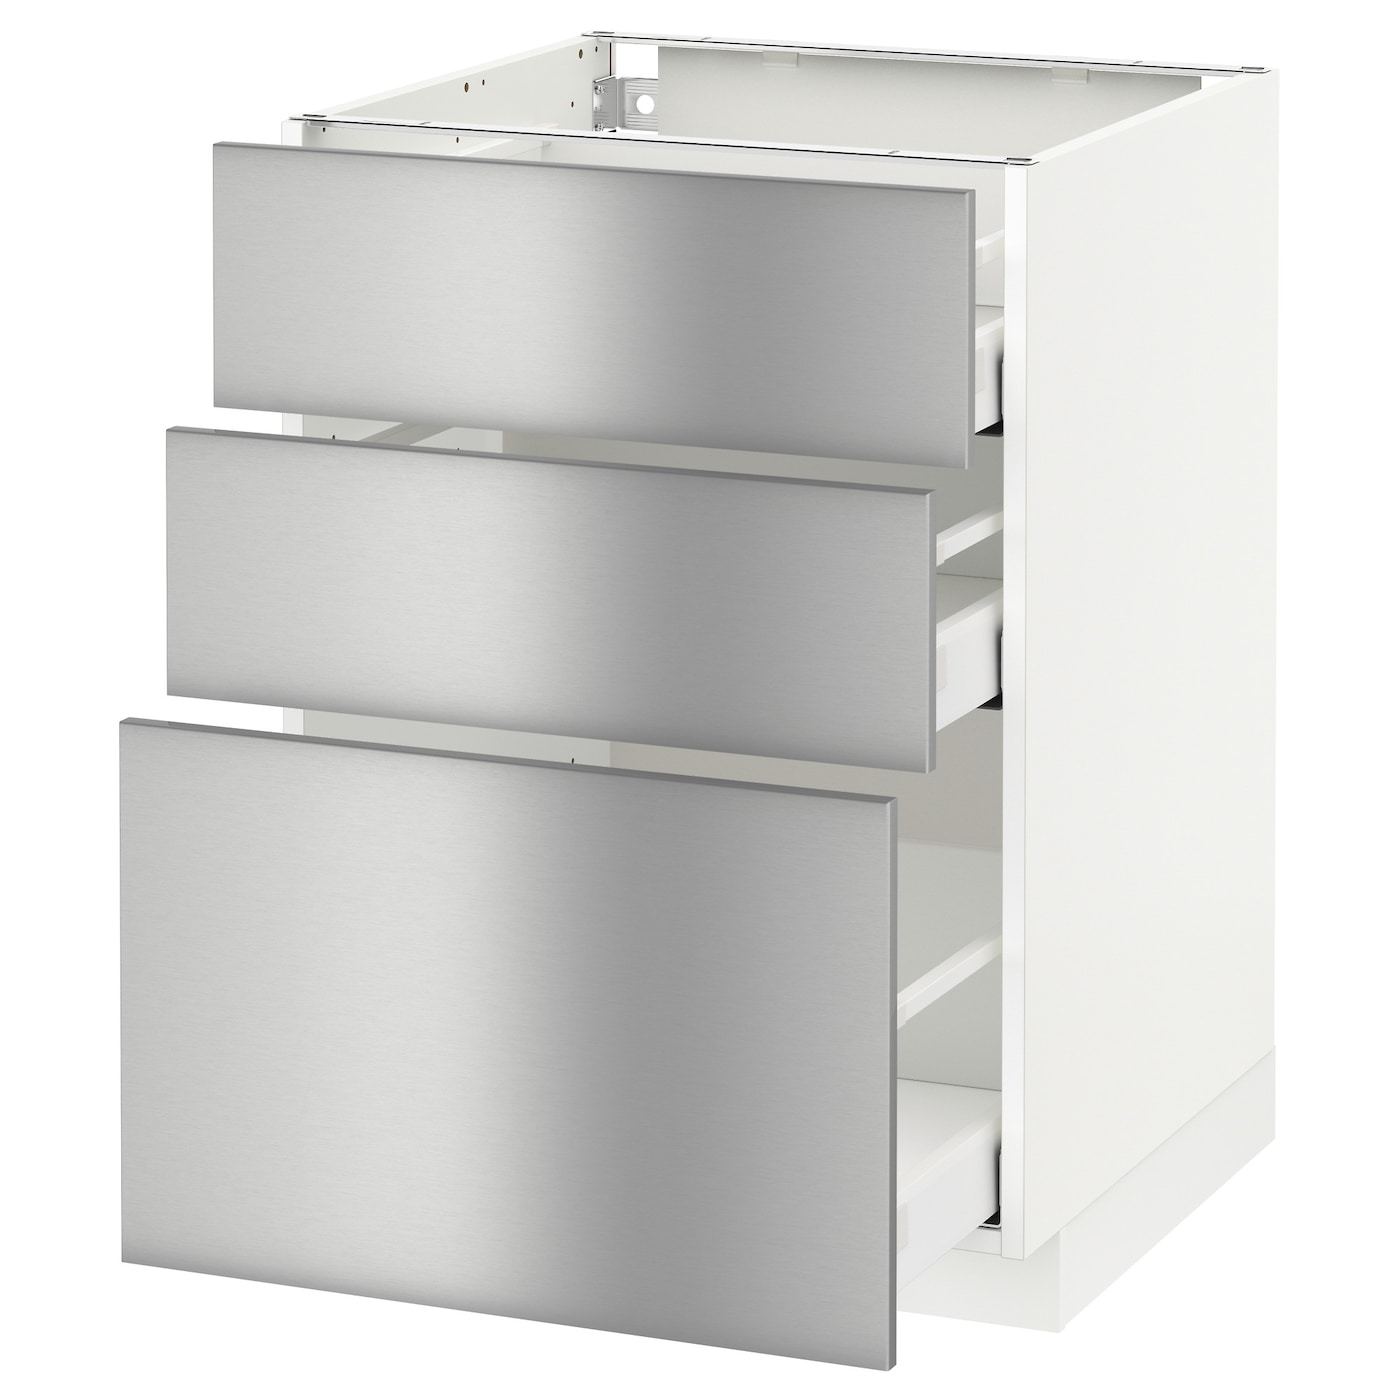 Metal Cabinets Kitchen: METOD/MAXIMERA Base Cabinet With 3 Drawers White/grevsta